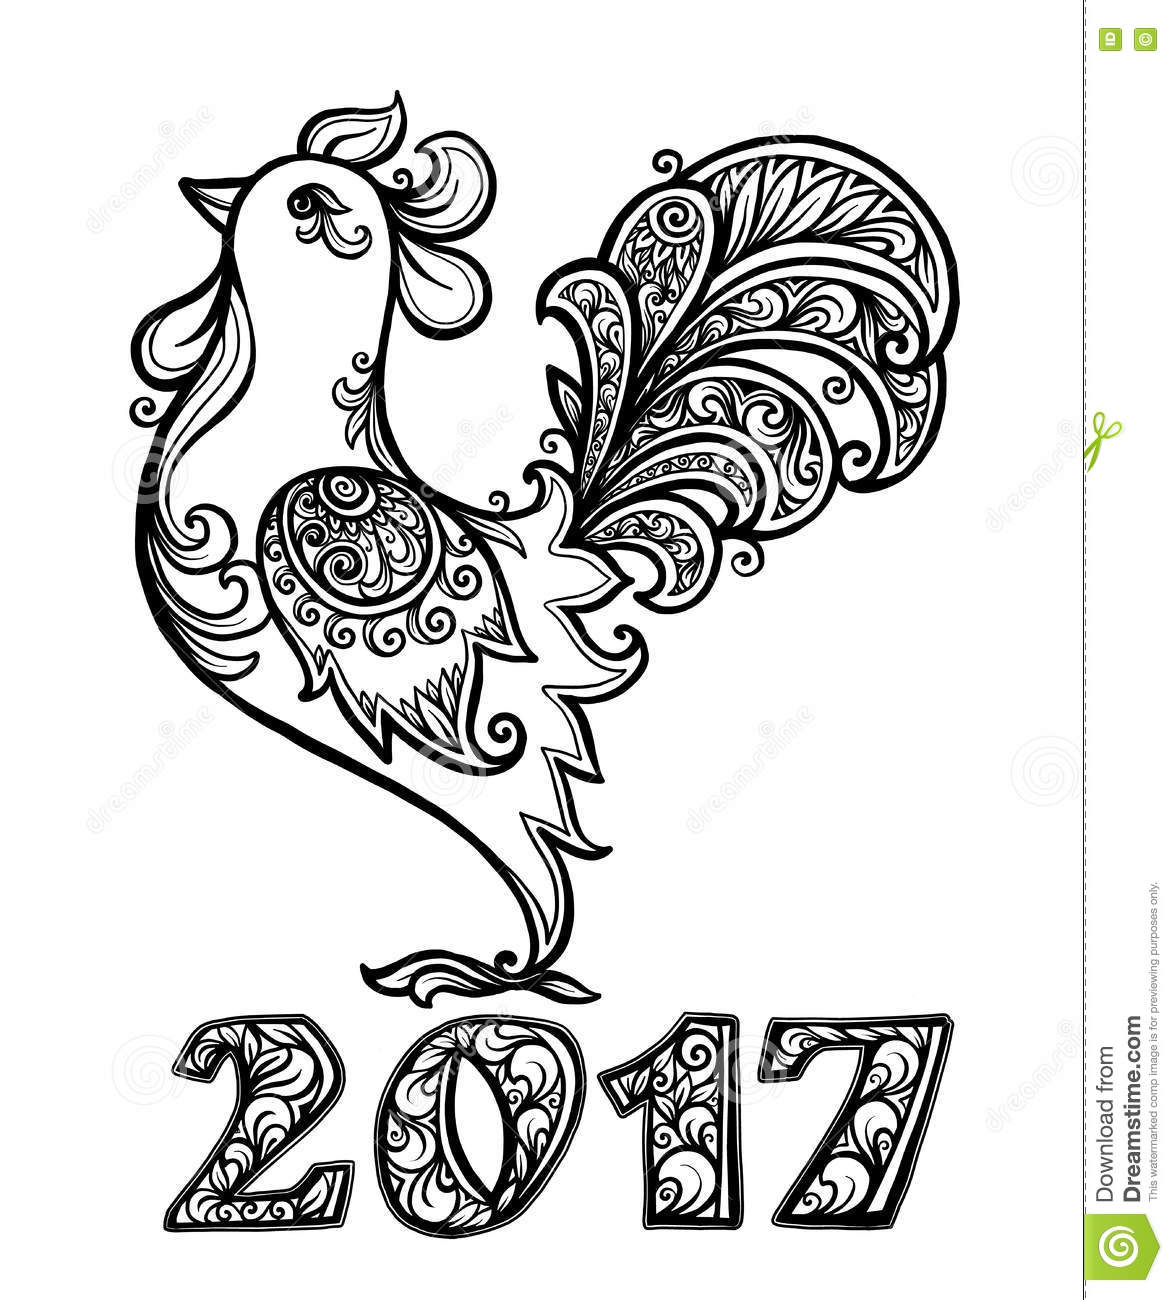 Colouring sheets chinese new year 2017 - Vector Rooster In Hand Drawn Ornate Doodle Style Chinese New Year Symbol With Ornamental 2017 Number